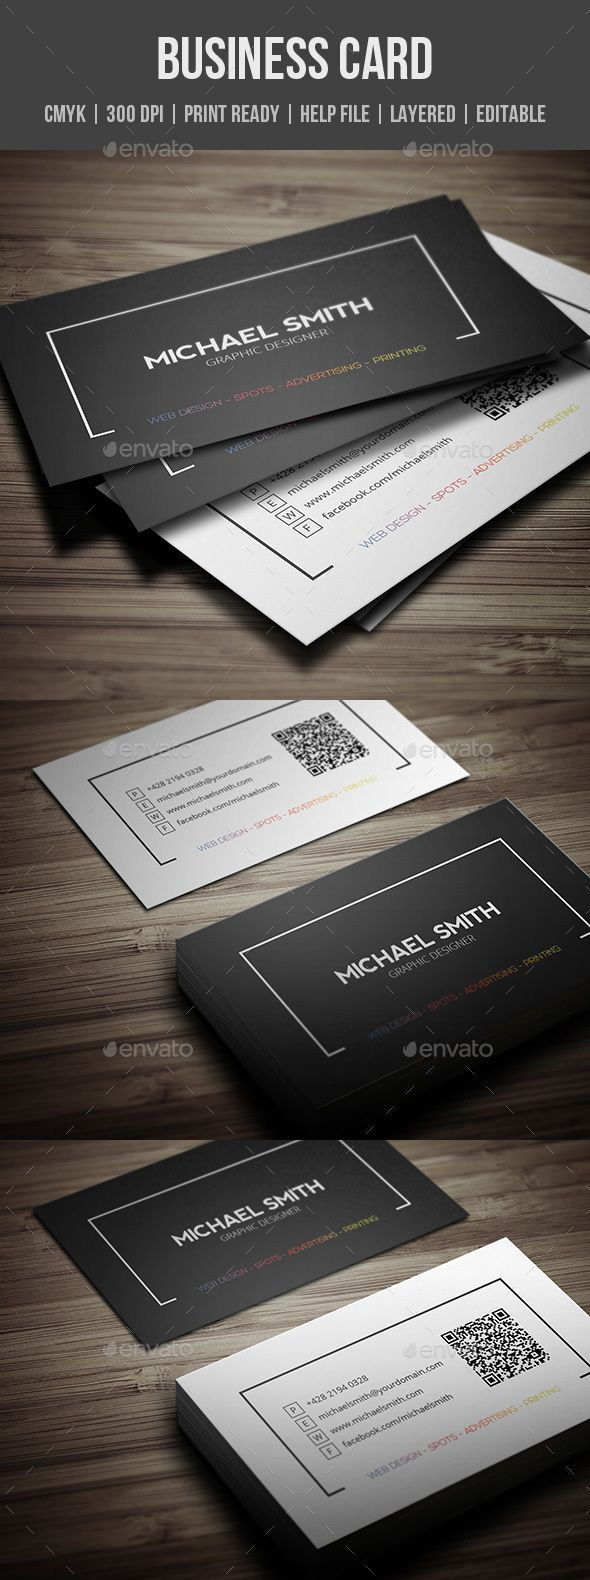 Business Cards Online Design Your Own Choice Image - Free Business ...